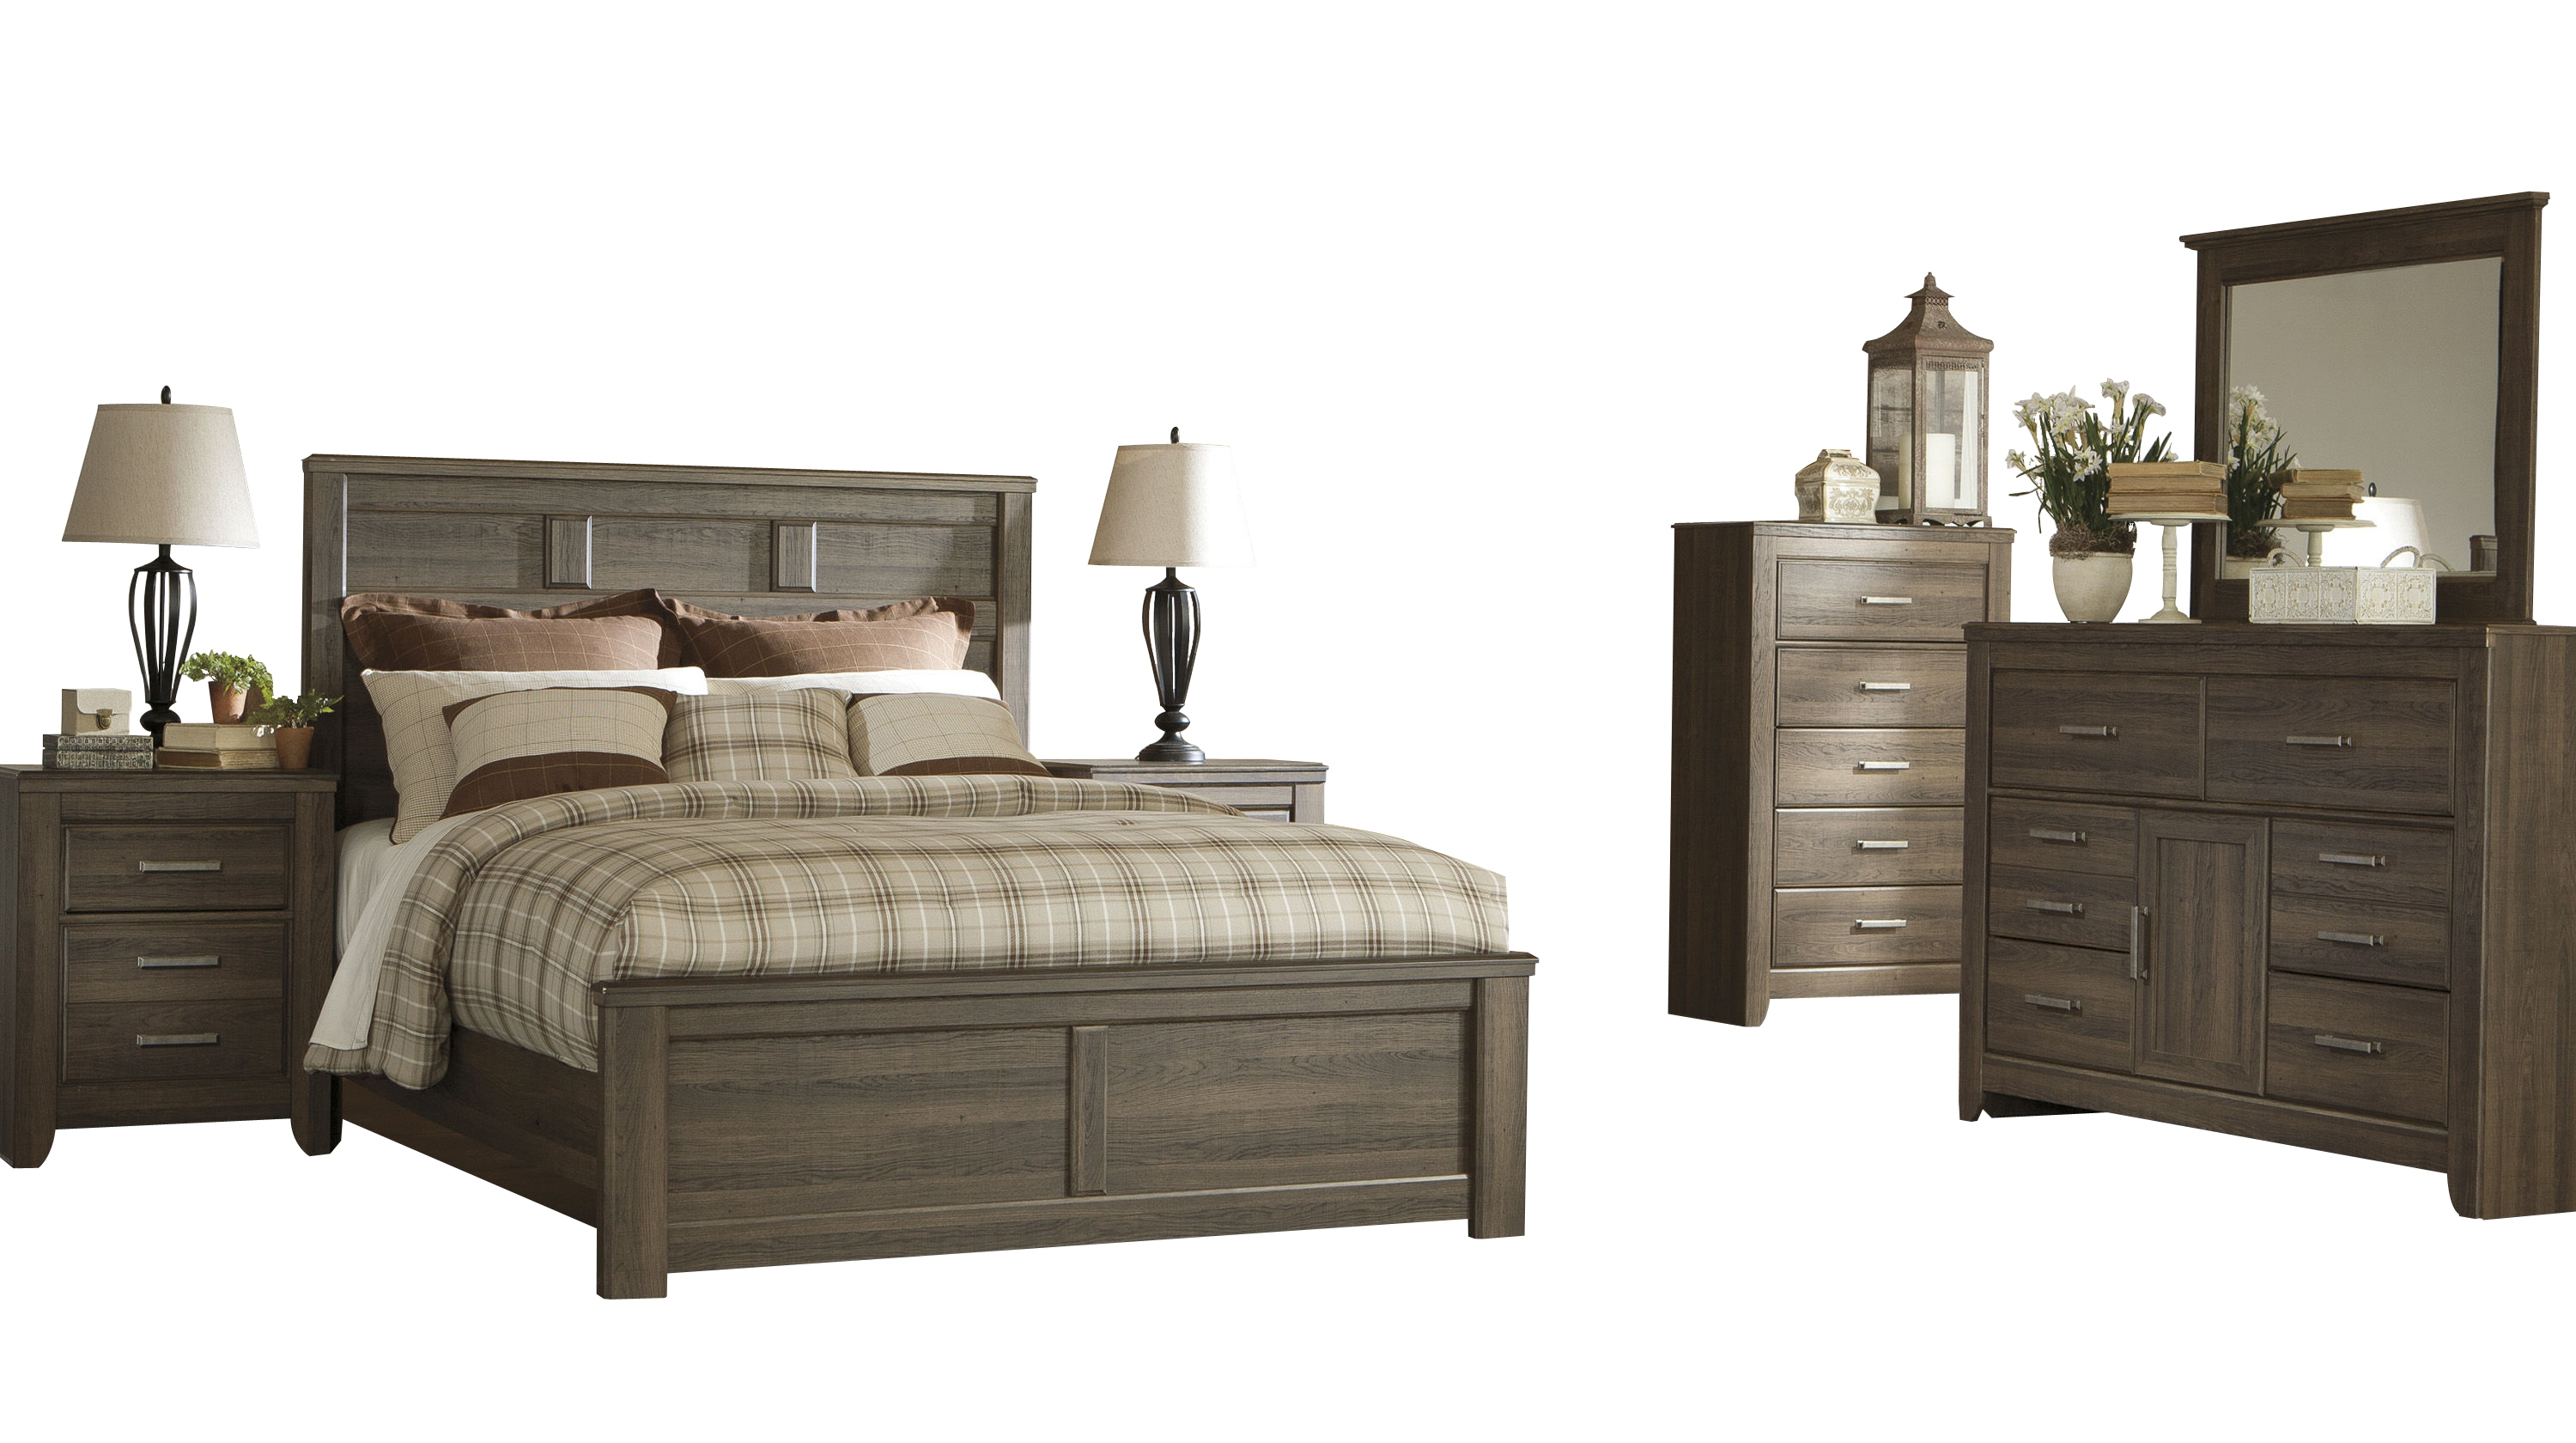 Ashley Furniture Juararo 2pc Bedroom Set With Queen Panel Bed The Classy Home